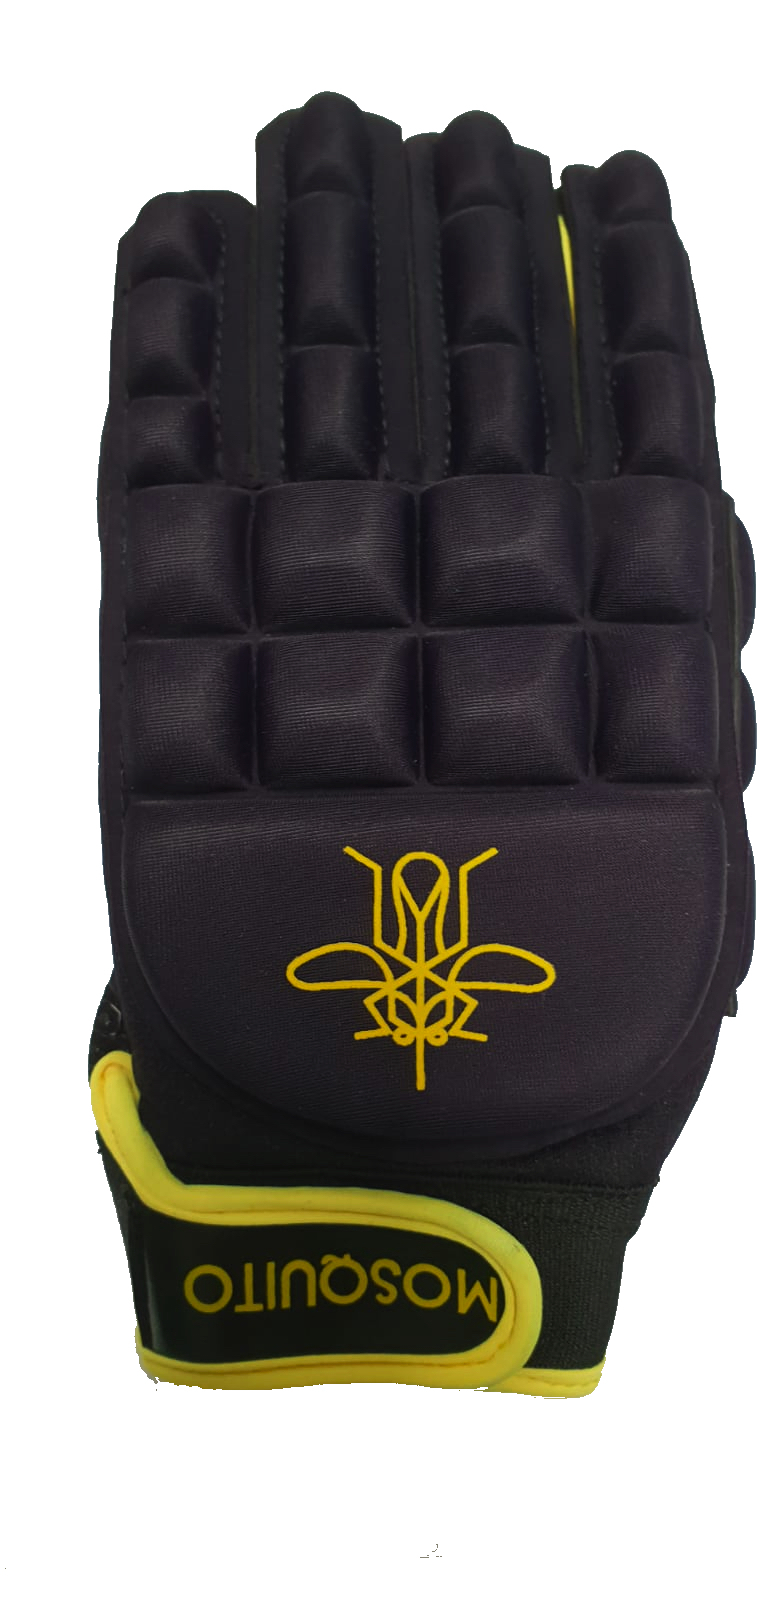 Mosquito Black Full Hand Glove